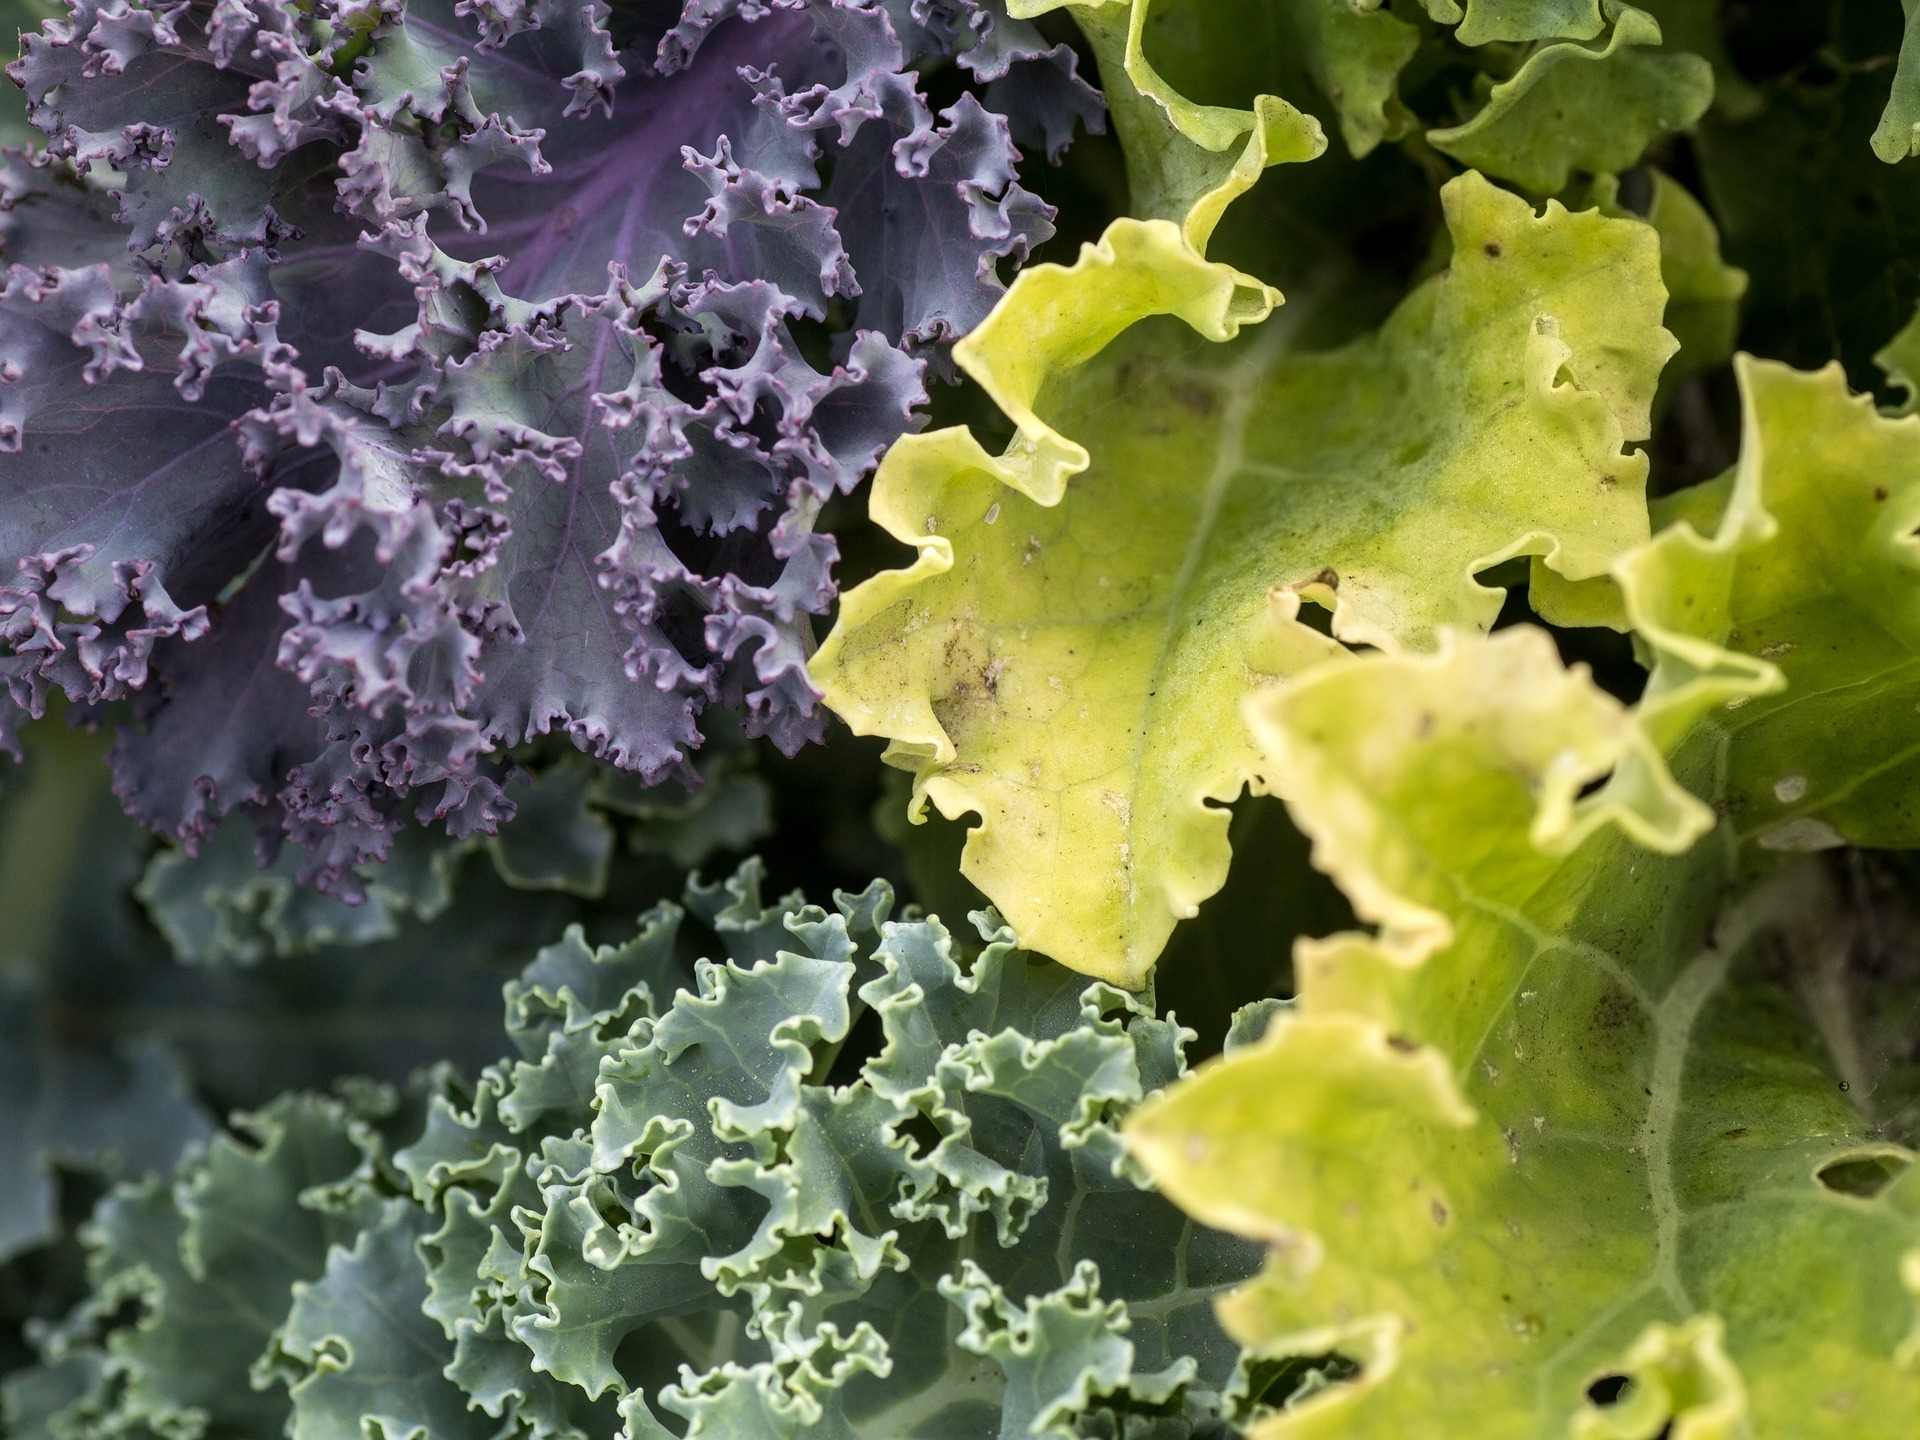 Weight Loss Fiber Foods – Kale is the World's Greatest Superfood!